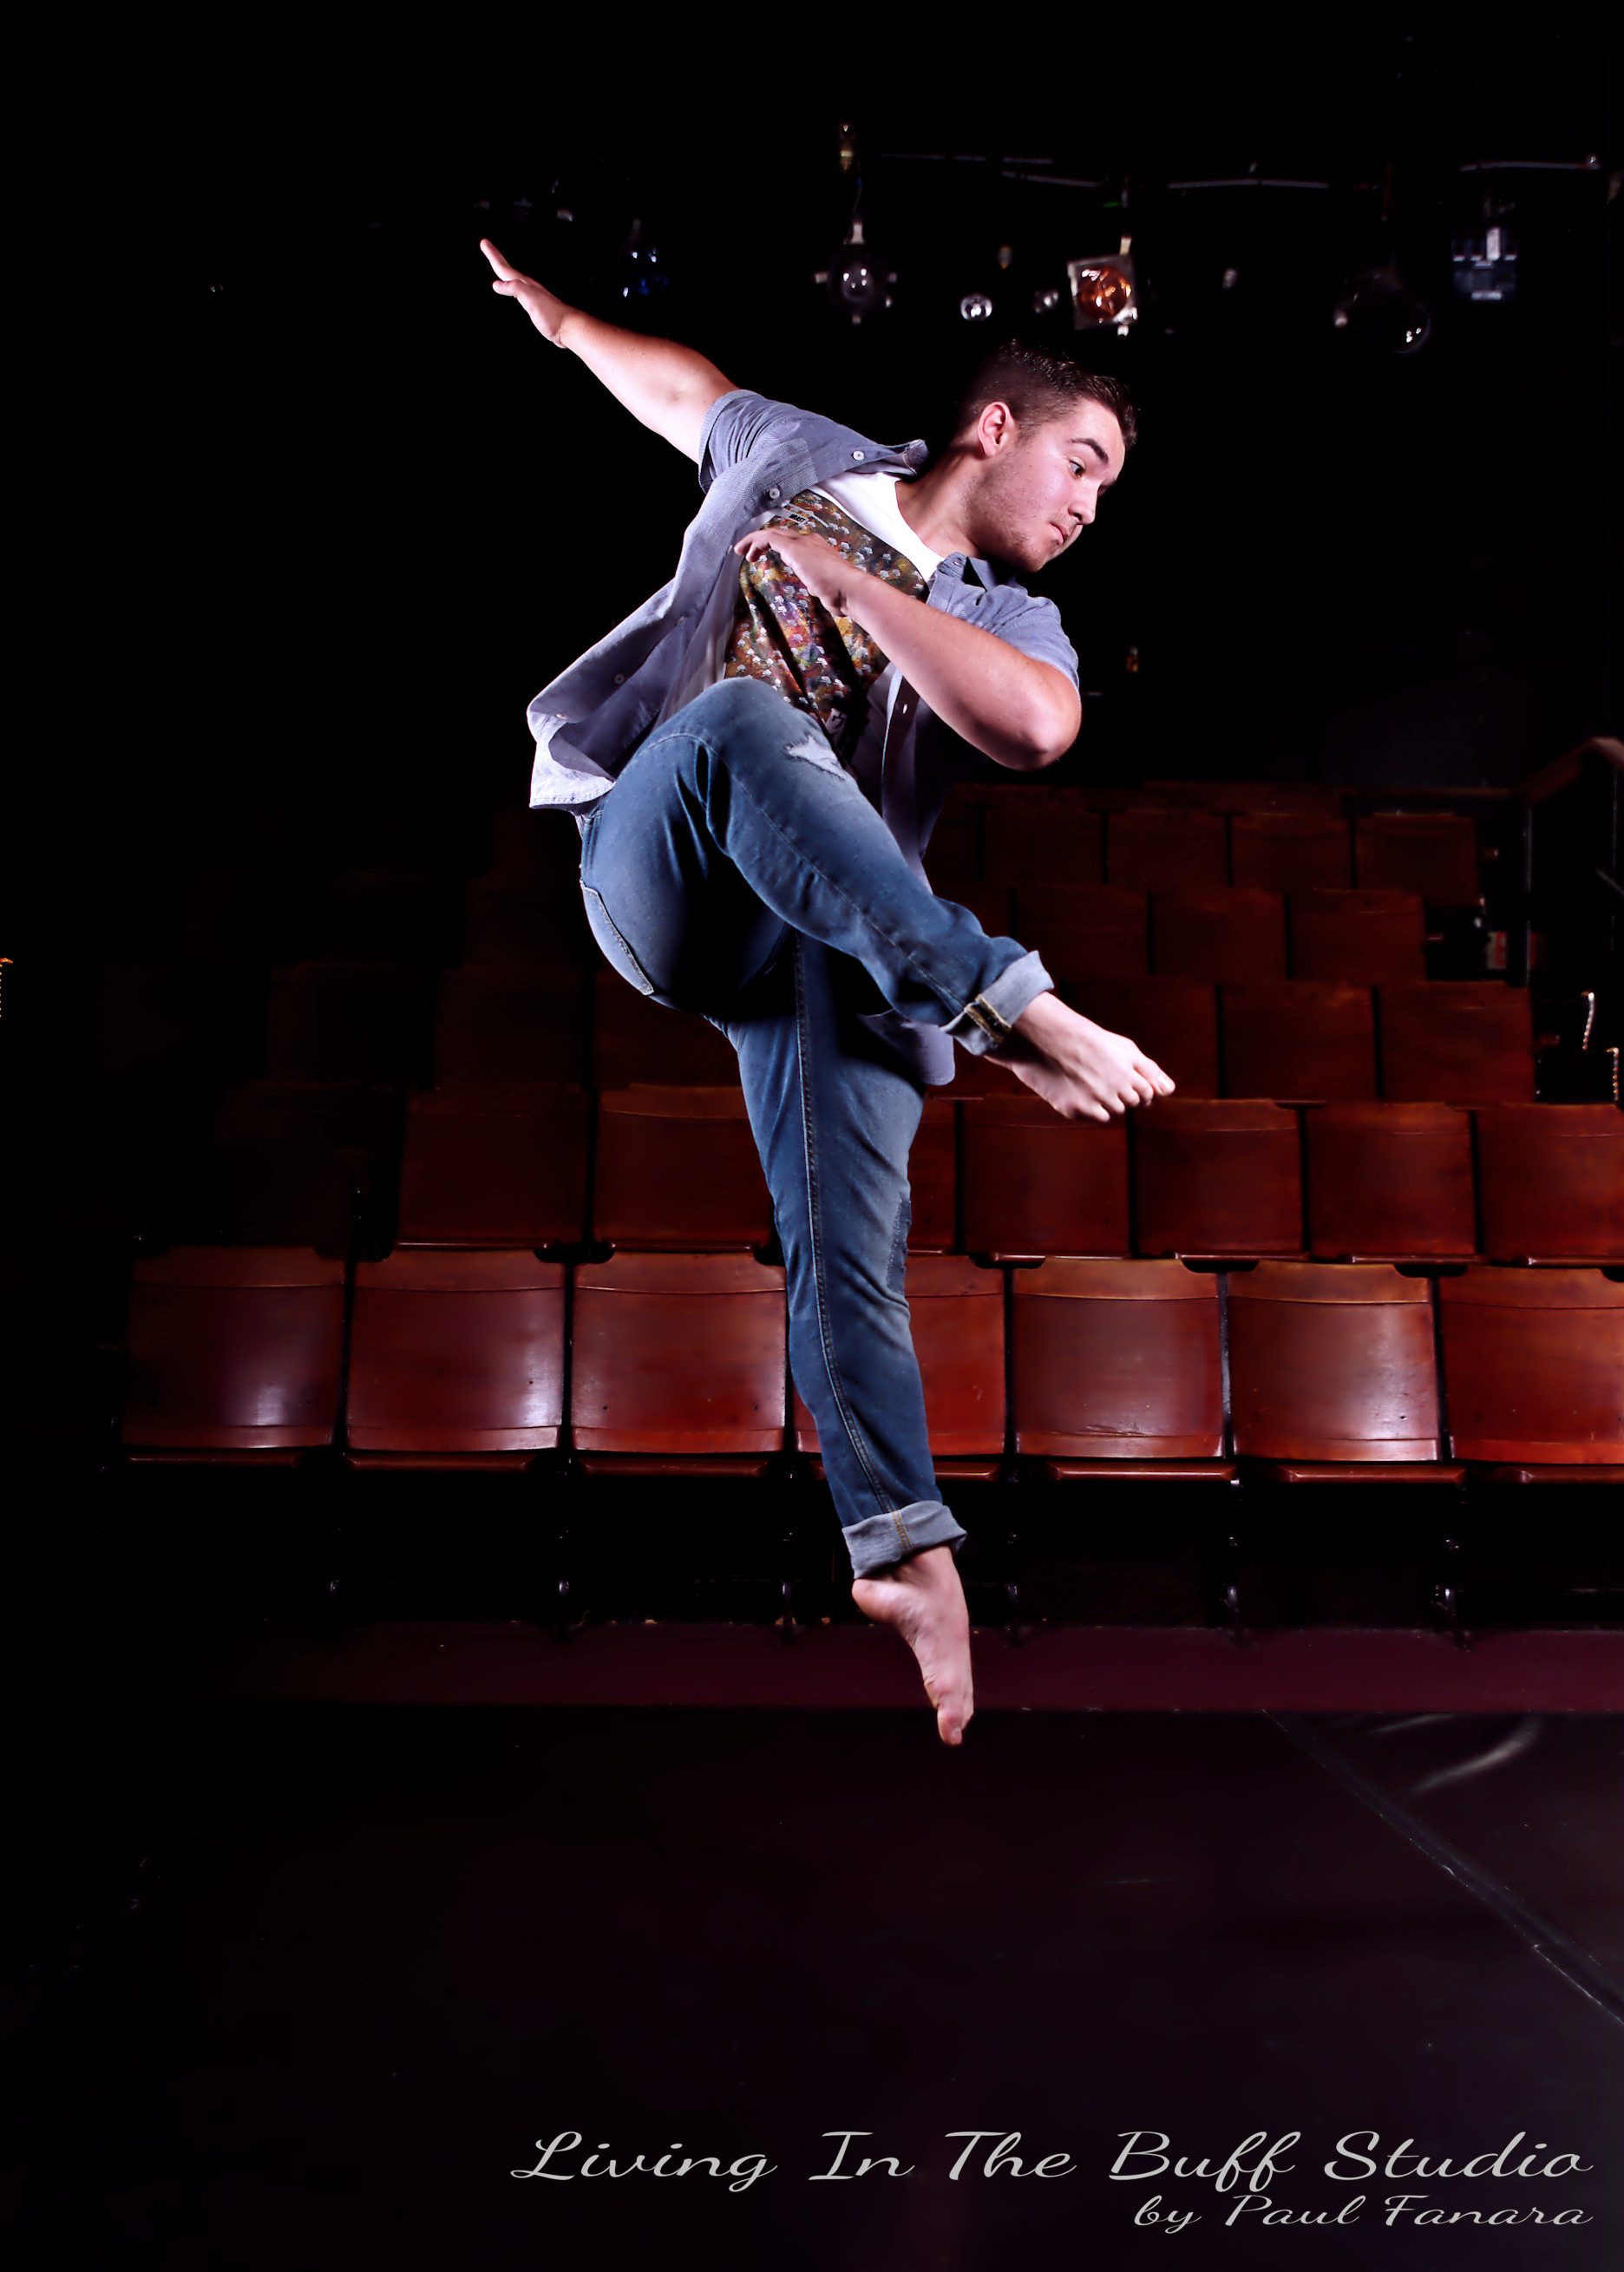 Jeremiah - Singer, Dancer, Actor